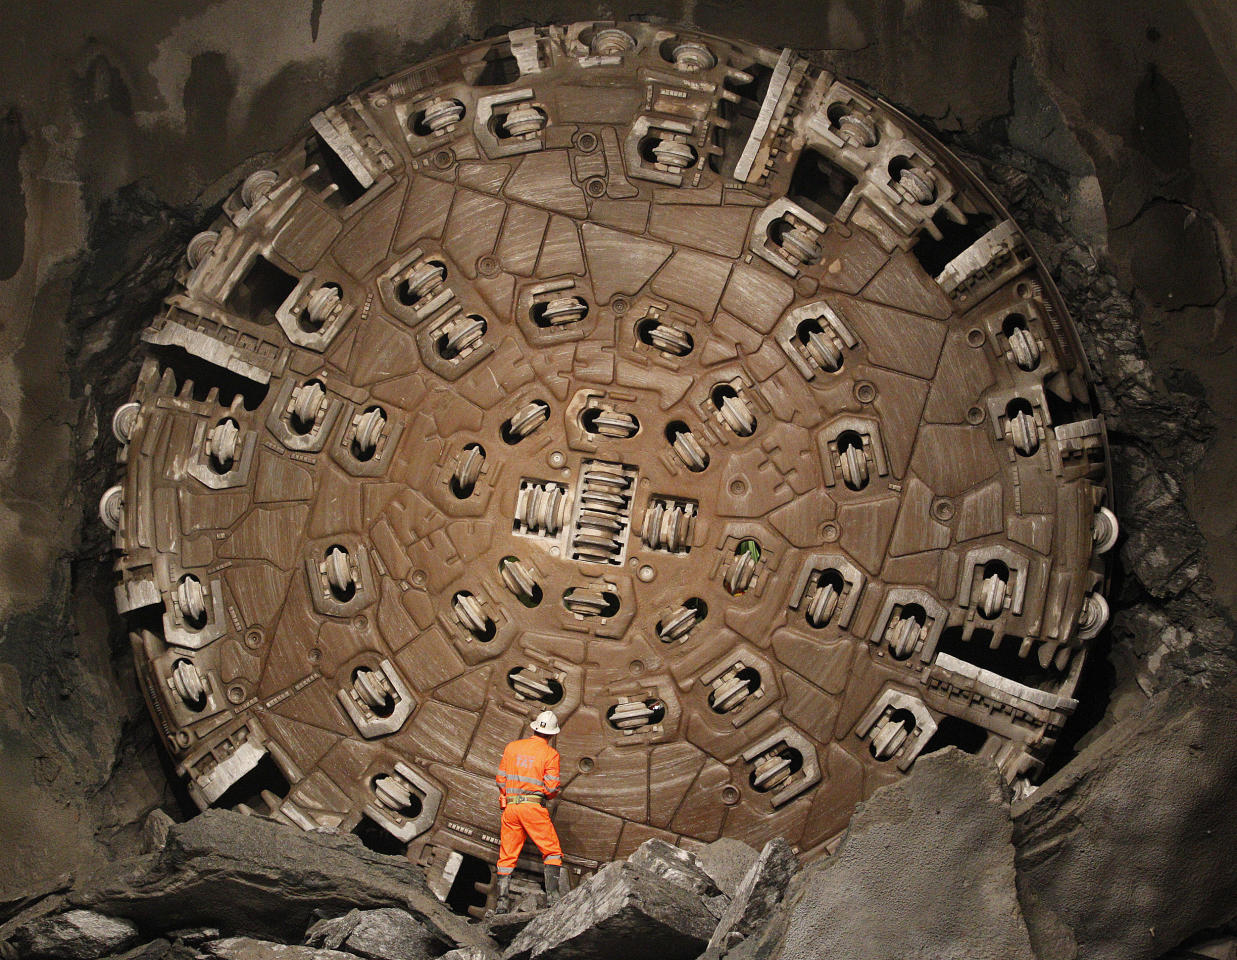 A miner stands in front of the drill machine 'Sissi' after it broke through the rock at the final section Faido-Sedrun, at the construction site of the NEAT Gotthard Base Tunnel October 15, 2010. With a length of 57 km (35 miles) crossing the Alps, the world's longest train tunnel should become operational at the end of 2017.            REUTERS/Christian Hartmann (SWITZERLAND  - Tags: TRANSPORT BUSINESS BUSINESS CONSTRUCTION POLITICS IMAGE OF THE DAY TOP PICTURE) FOR BEST QUALITY IMAGE SEE: GM1E6CG0XUC01 - RTXTGU6